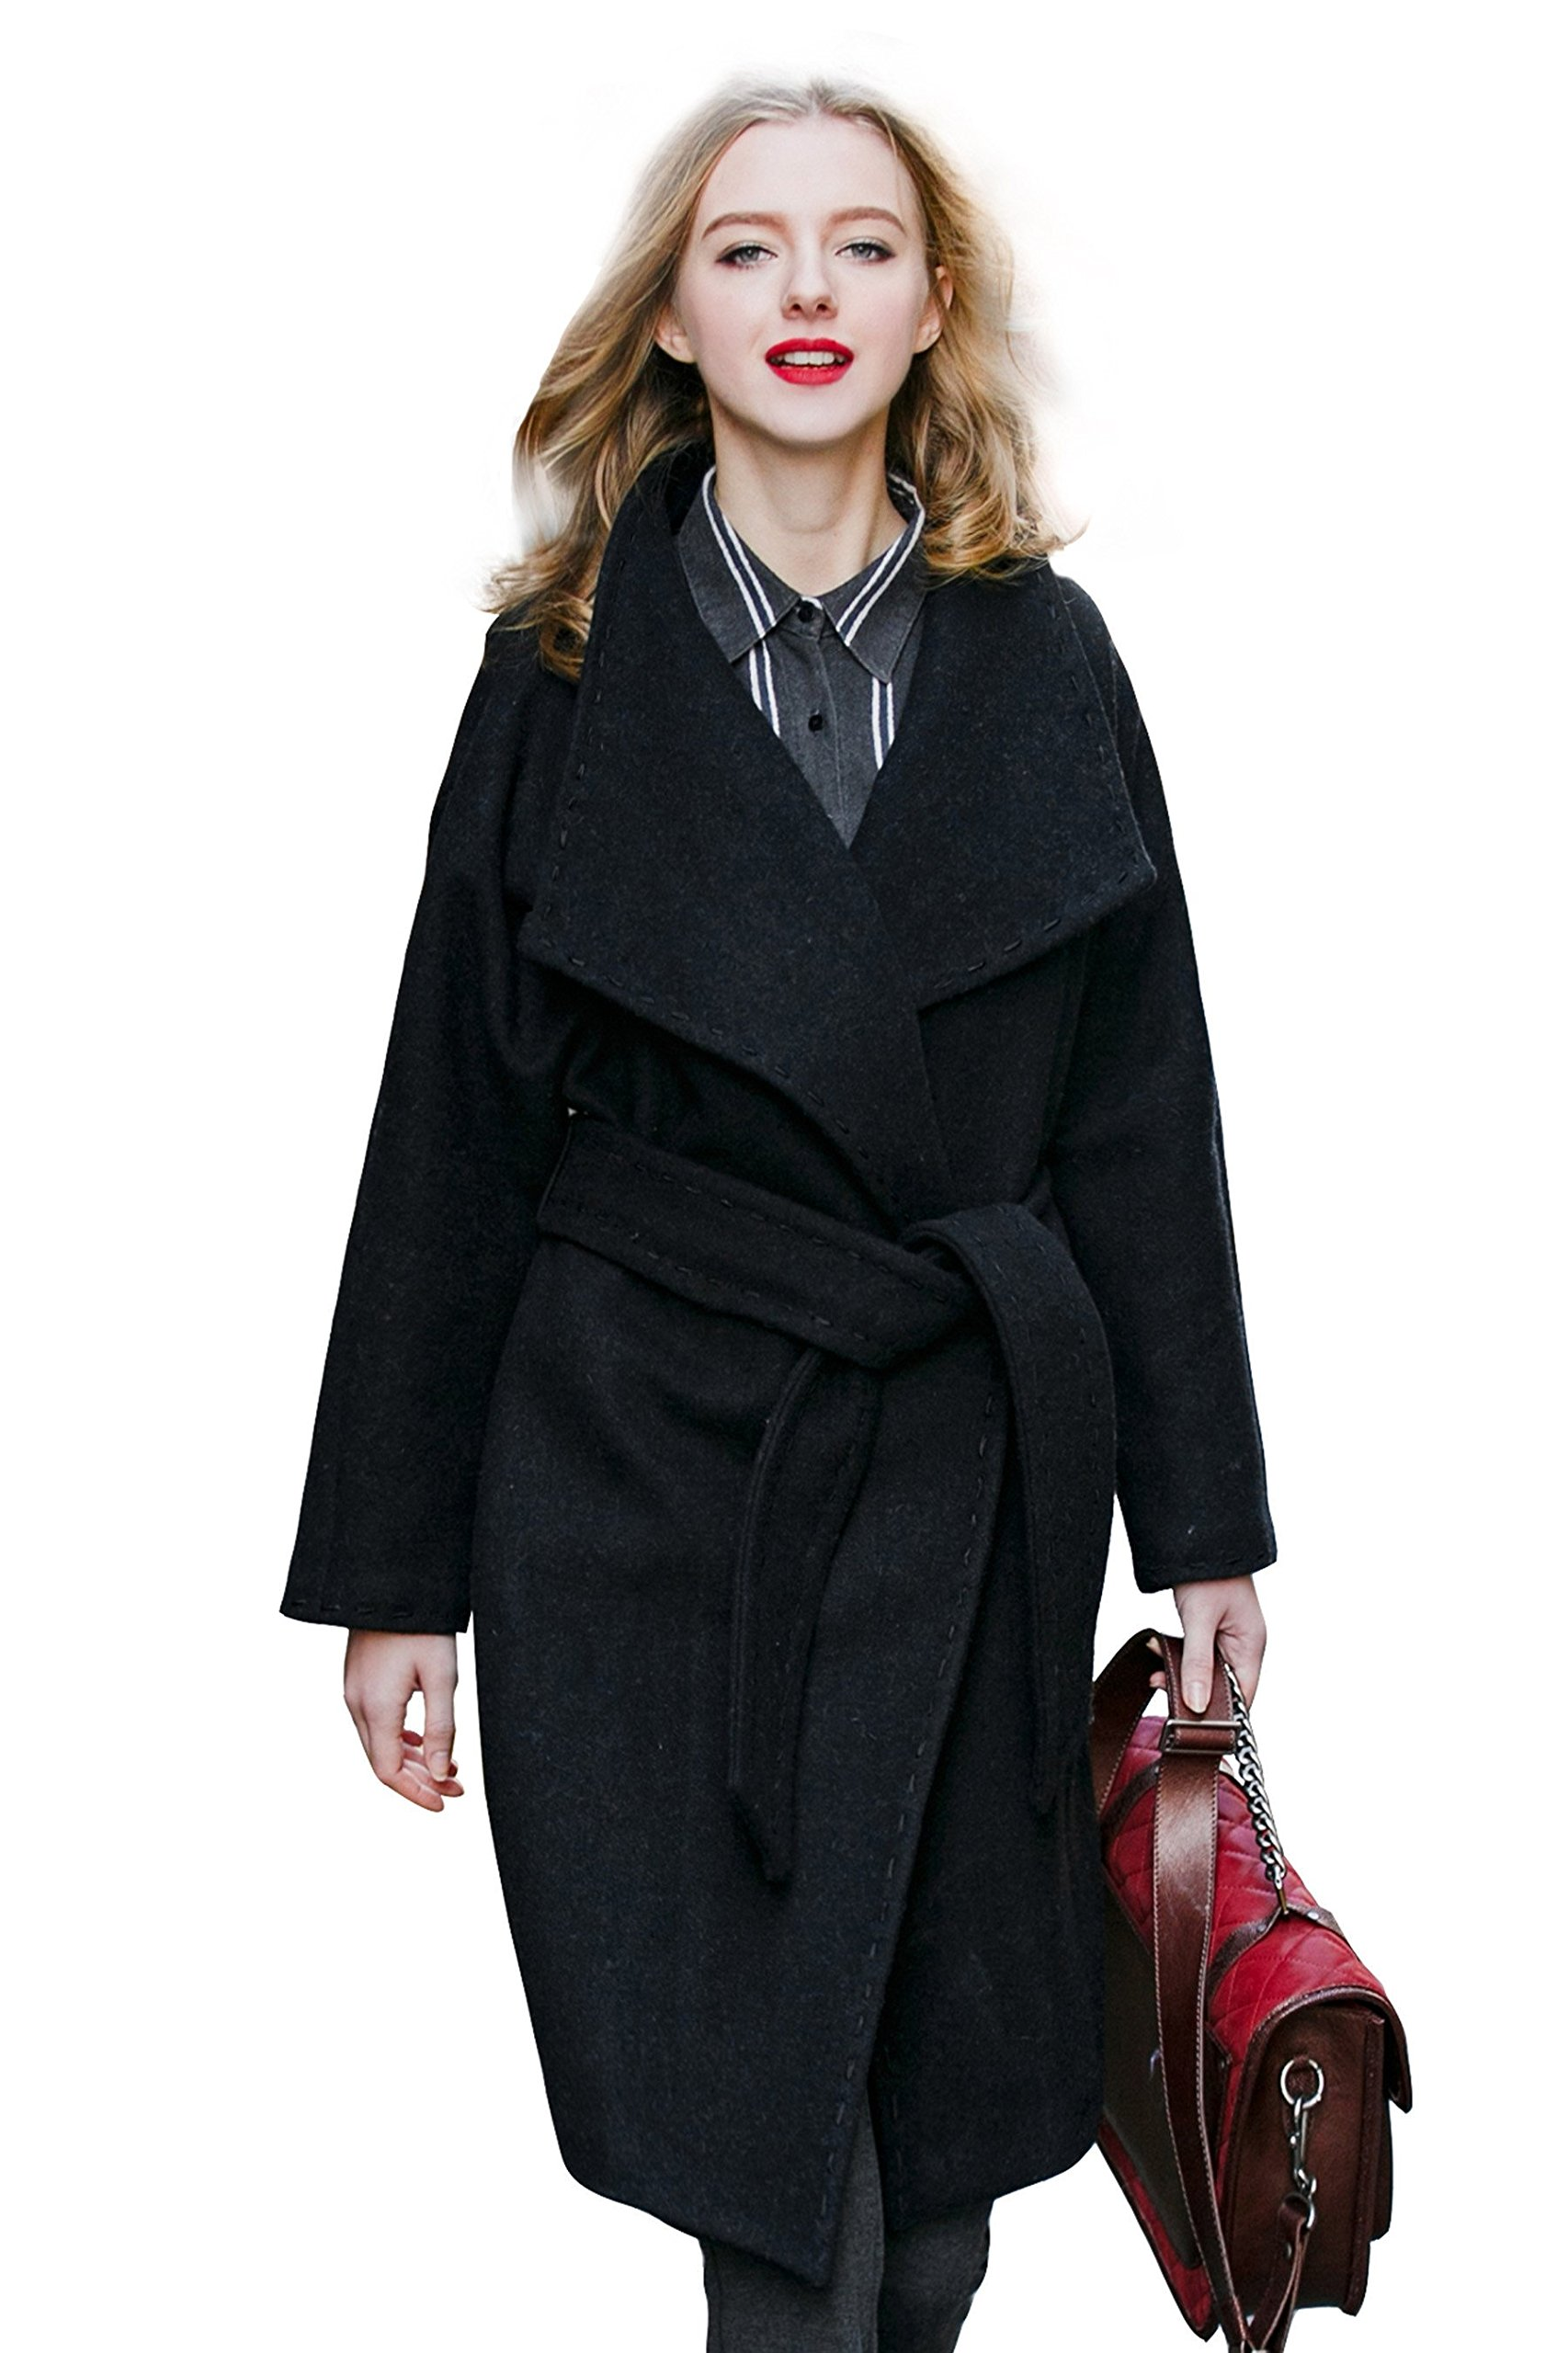 You.U Women's Wool Blend Coat Lapel Collar Loose Fit with Raglan Sleeve Black Size L